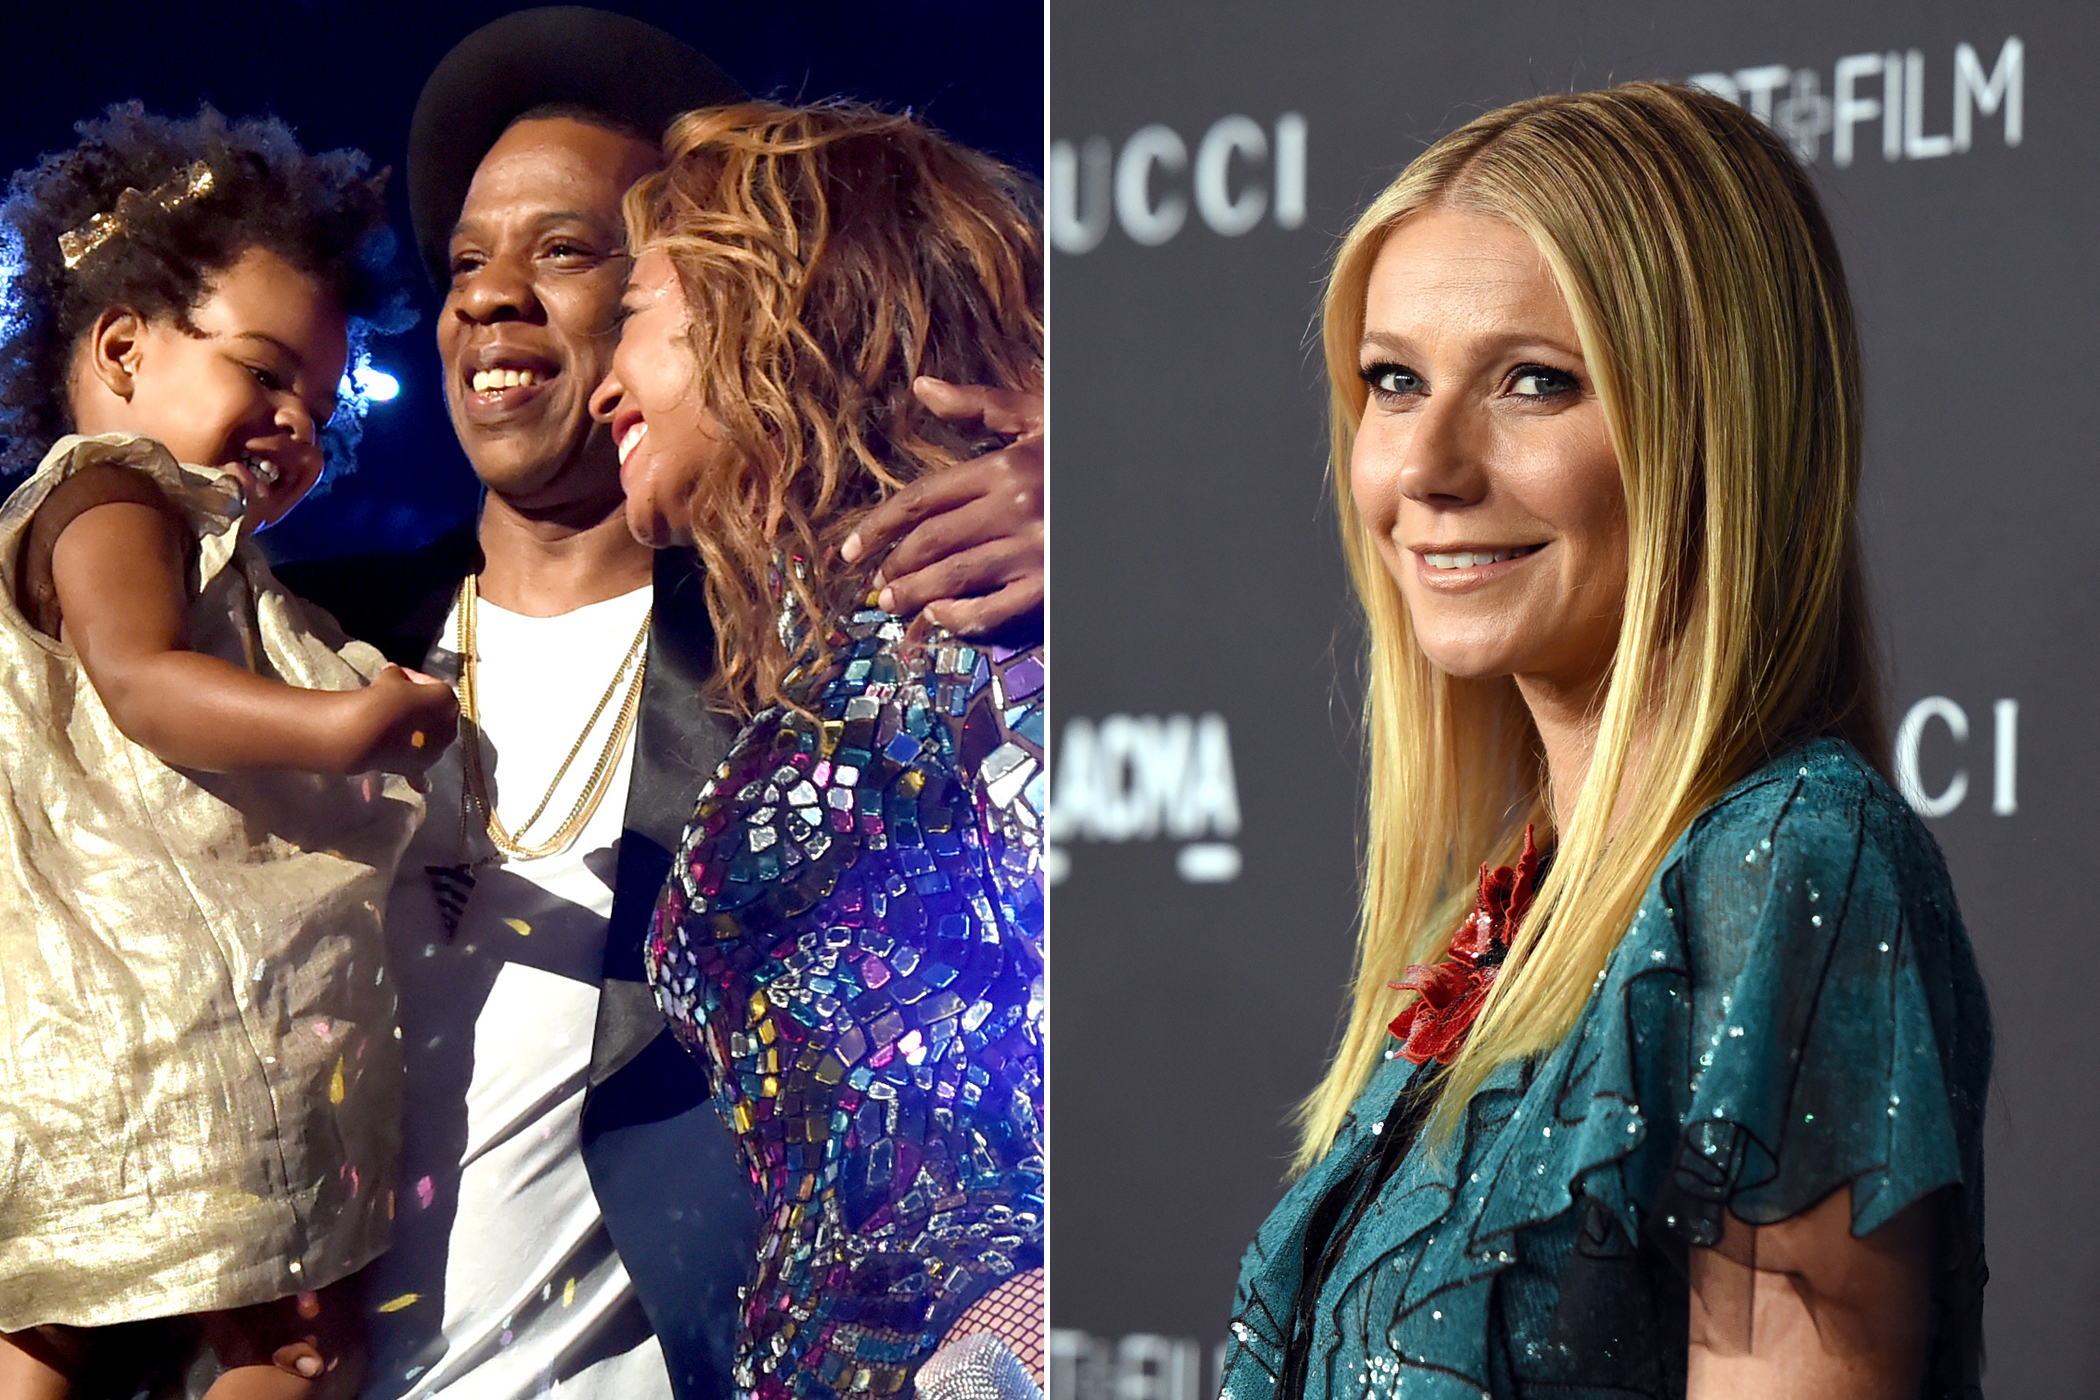 LeftRecording artist Jay-Z and daughter Blue Ivy Carter present the Michael Jackson Video Vanguard Award to honoree Beyonce onstage during the 2014 MTV Video Music Awards in Calif. on August 24, 2014.                     RightGwyneth Paltrow, wearing Gucci, attends LACMA 2015 Art+Film Gala in Los Angeles on Nov. 7, 2015.